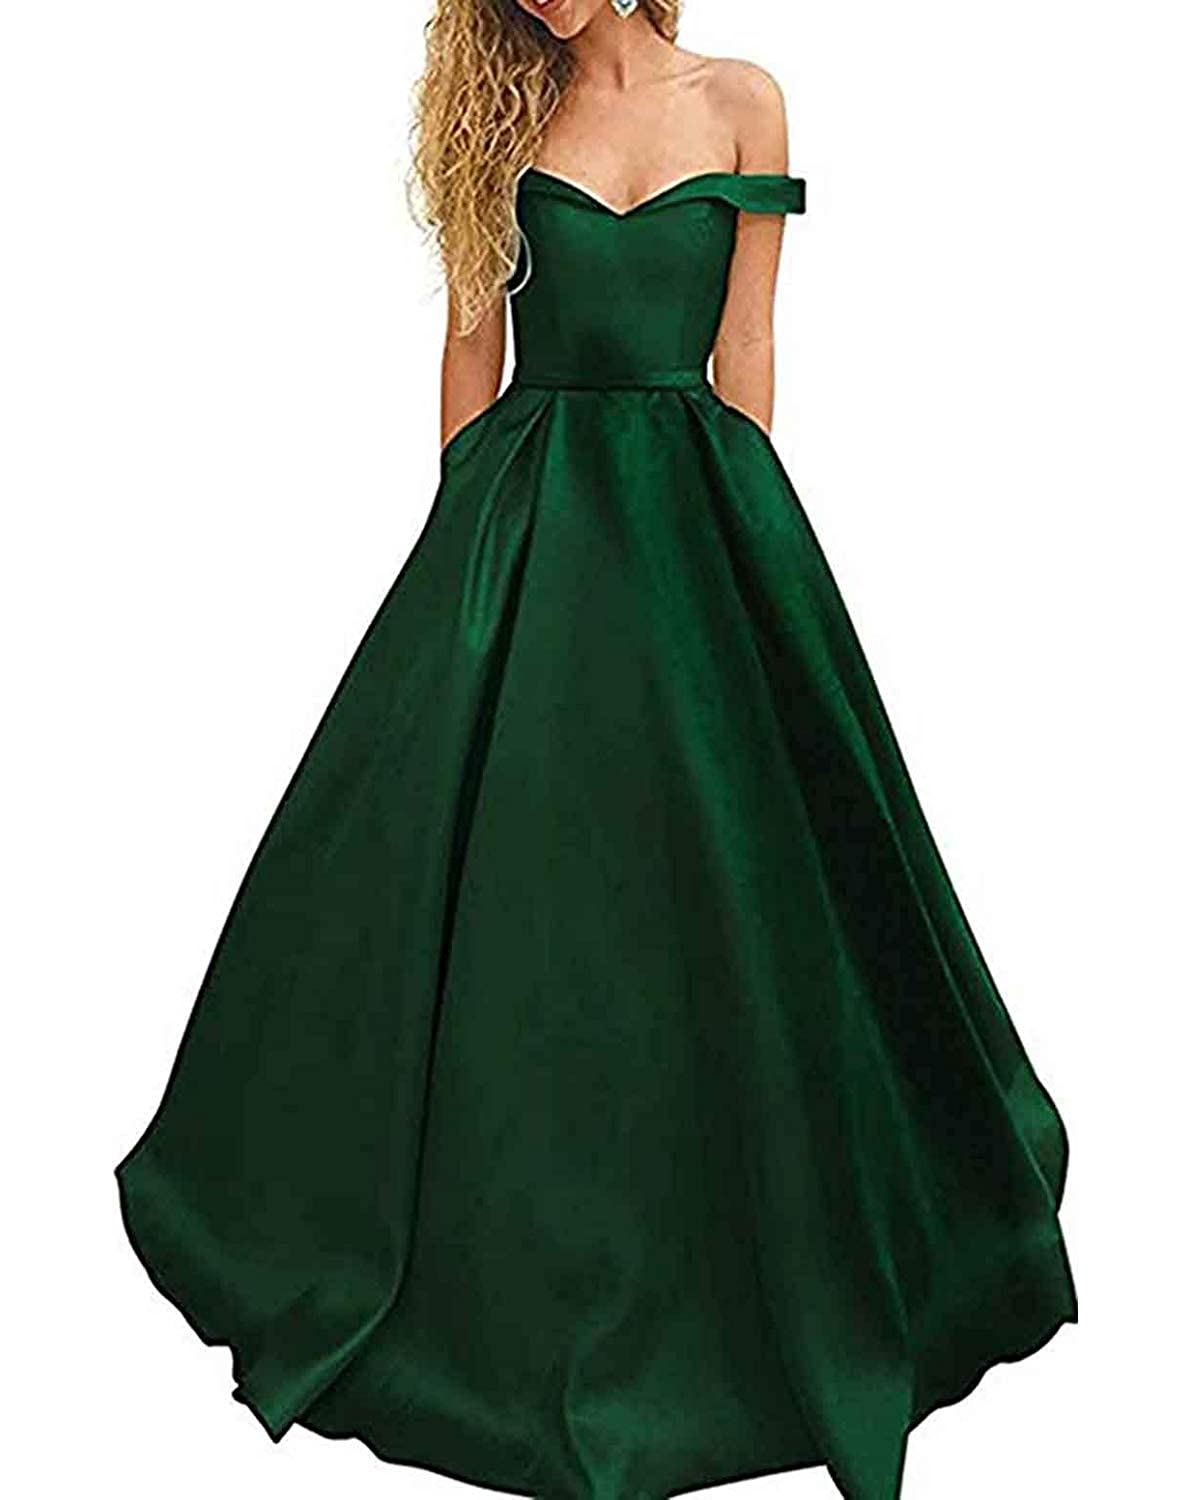 Dark Green WHLWHL OffTheShoulder Long Prom Dress Party Gowns for Women 2019 Evening with Pockets